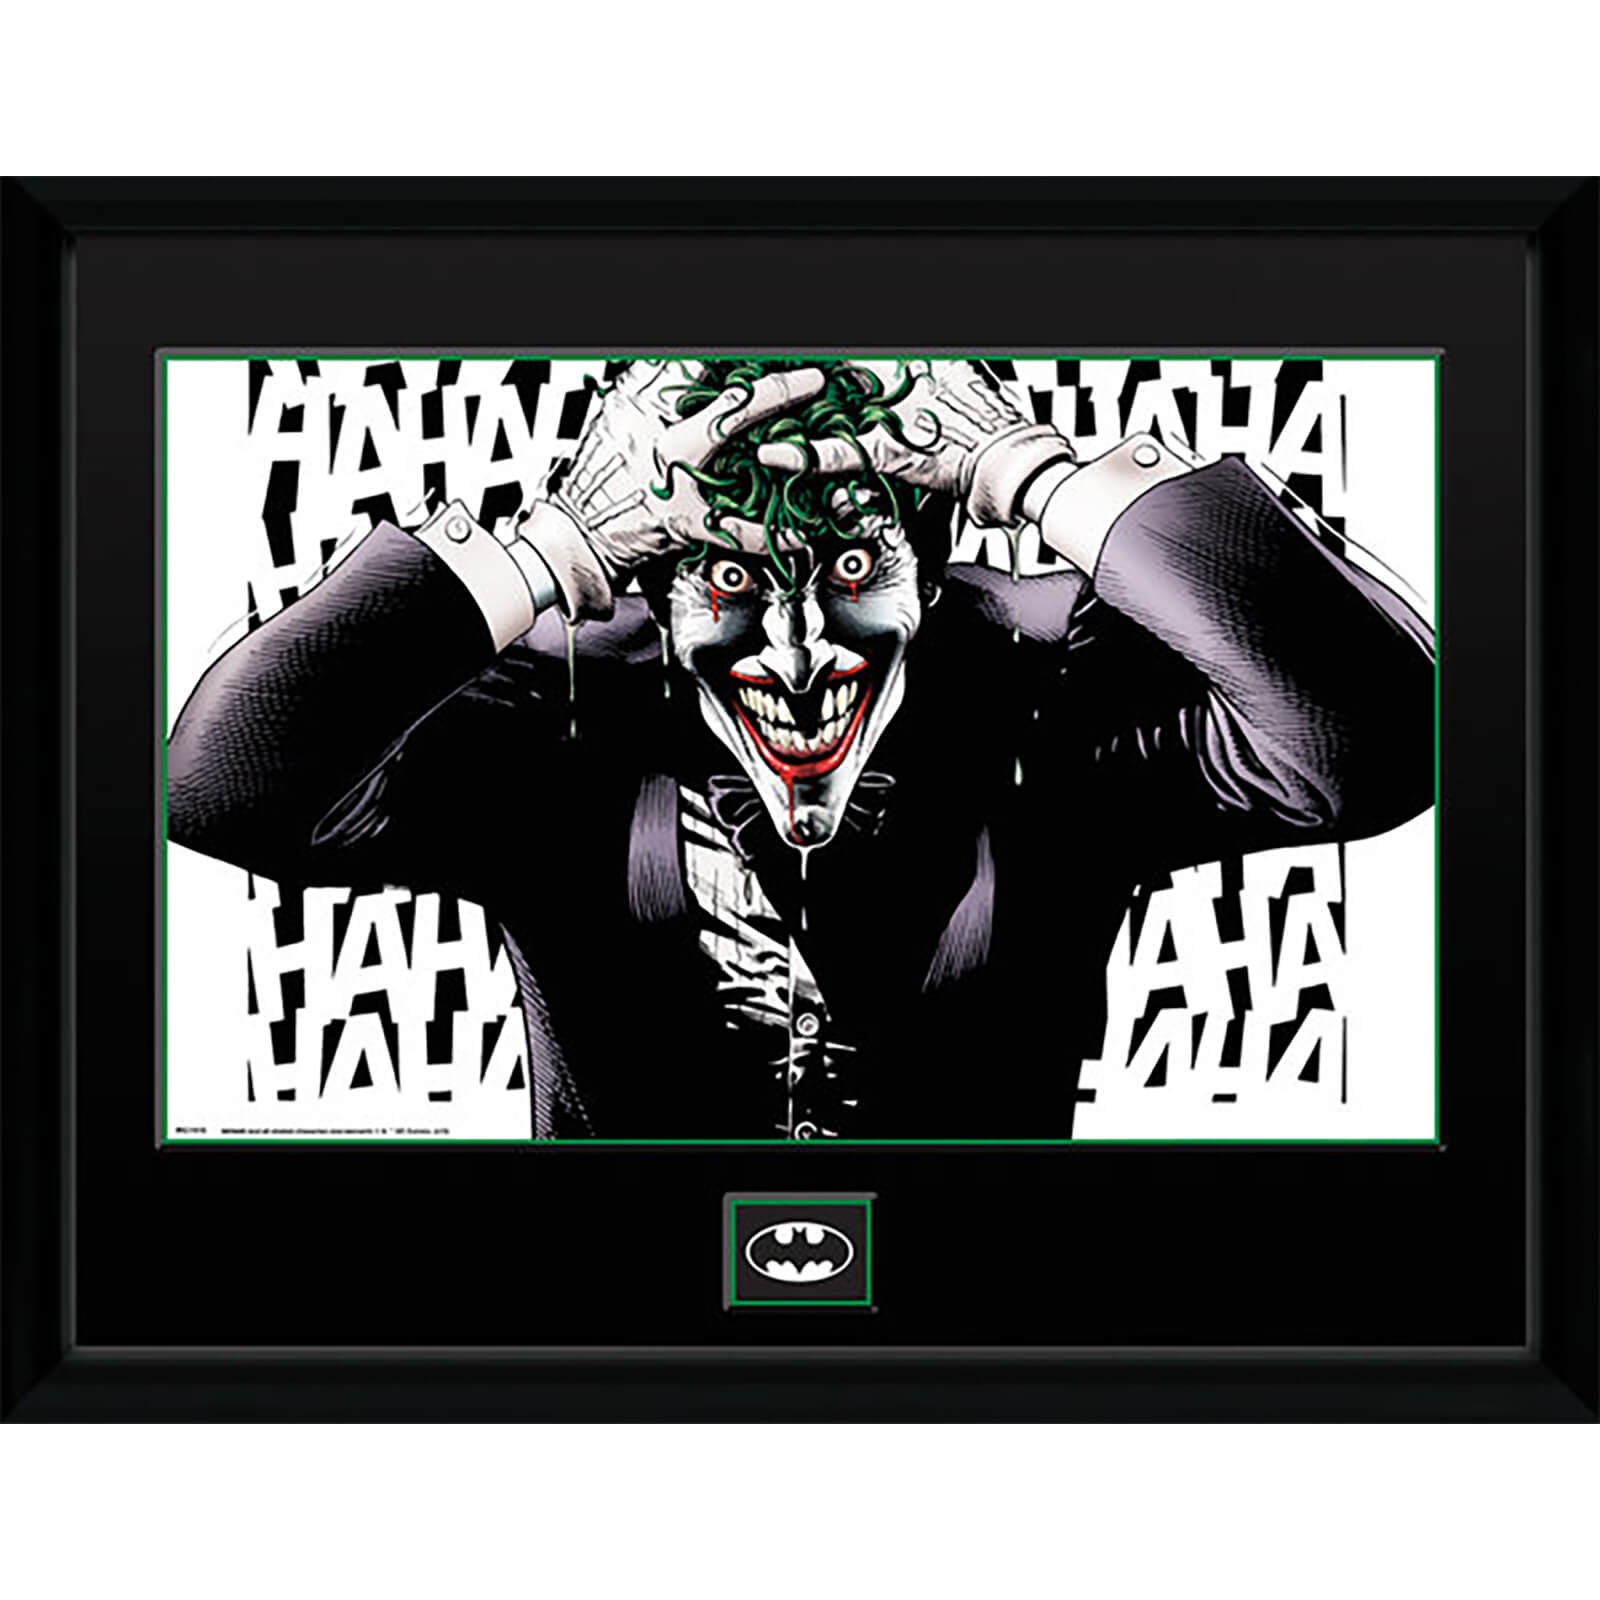 DC Comics Killing Joke - 16 x 12 Inches Framed Photograph